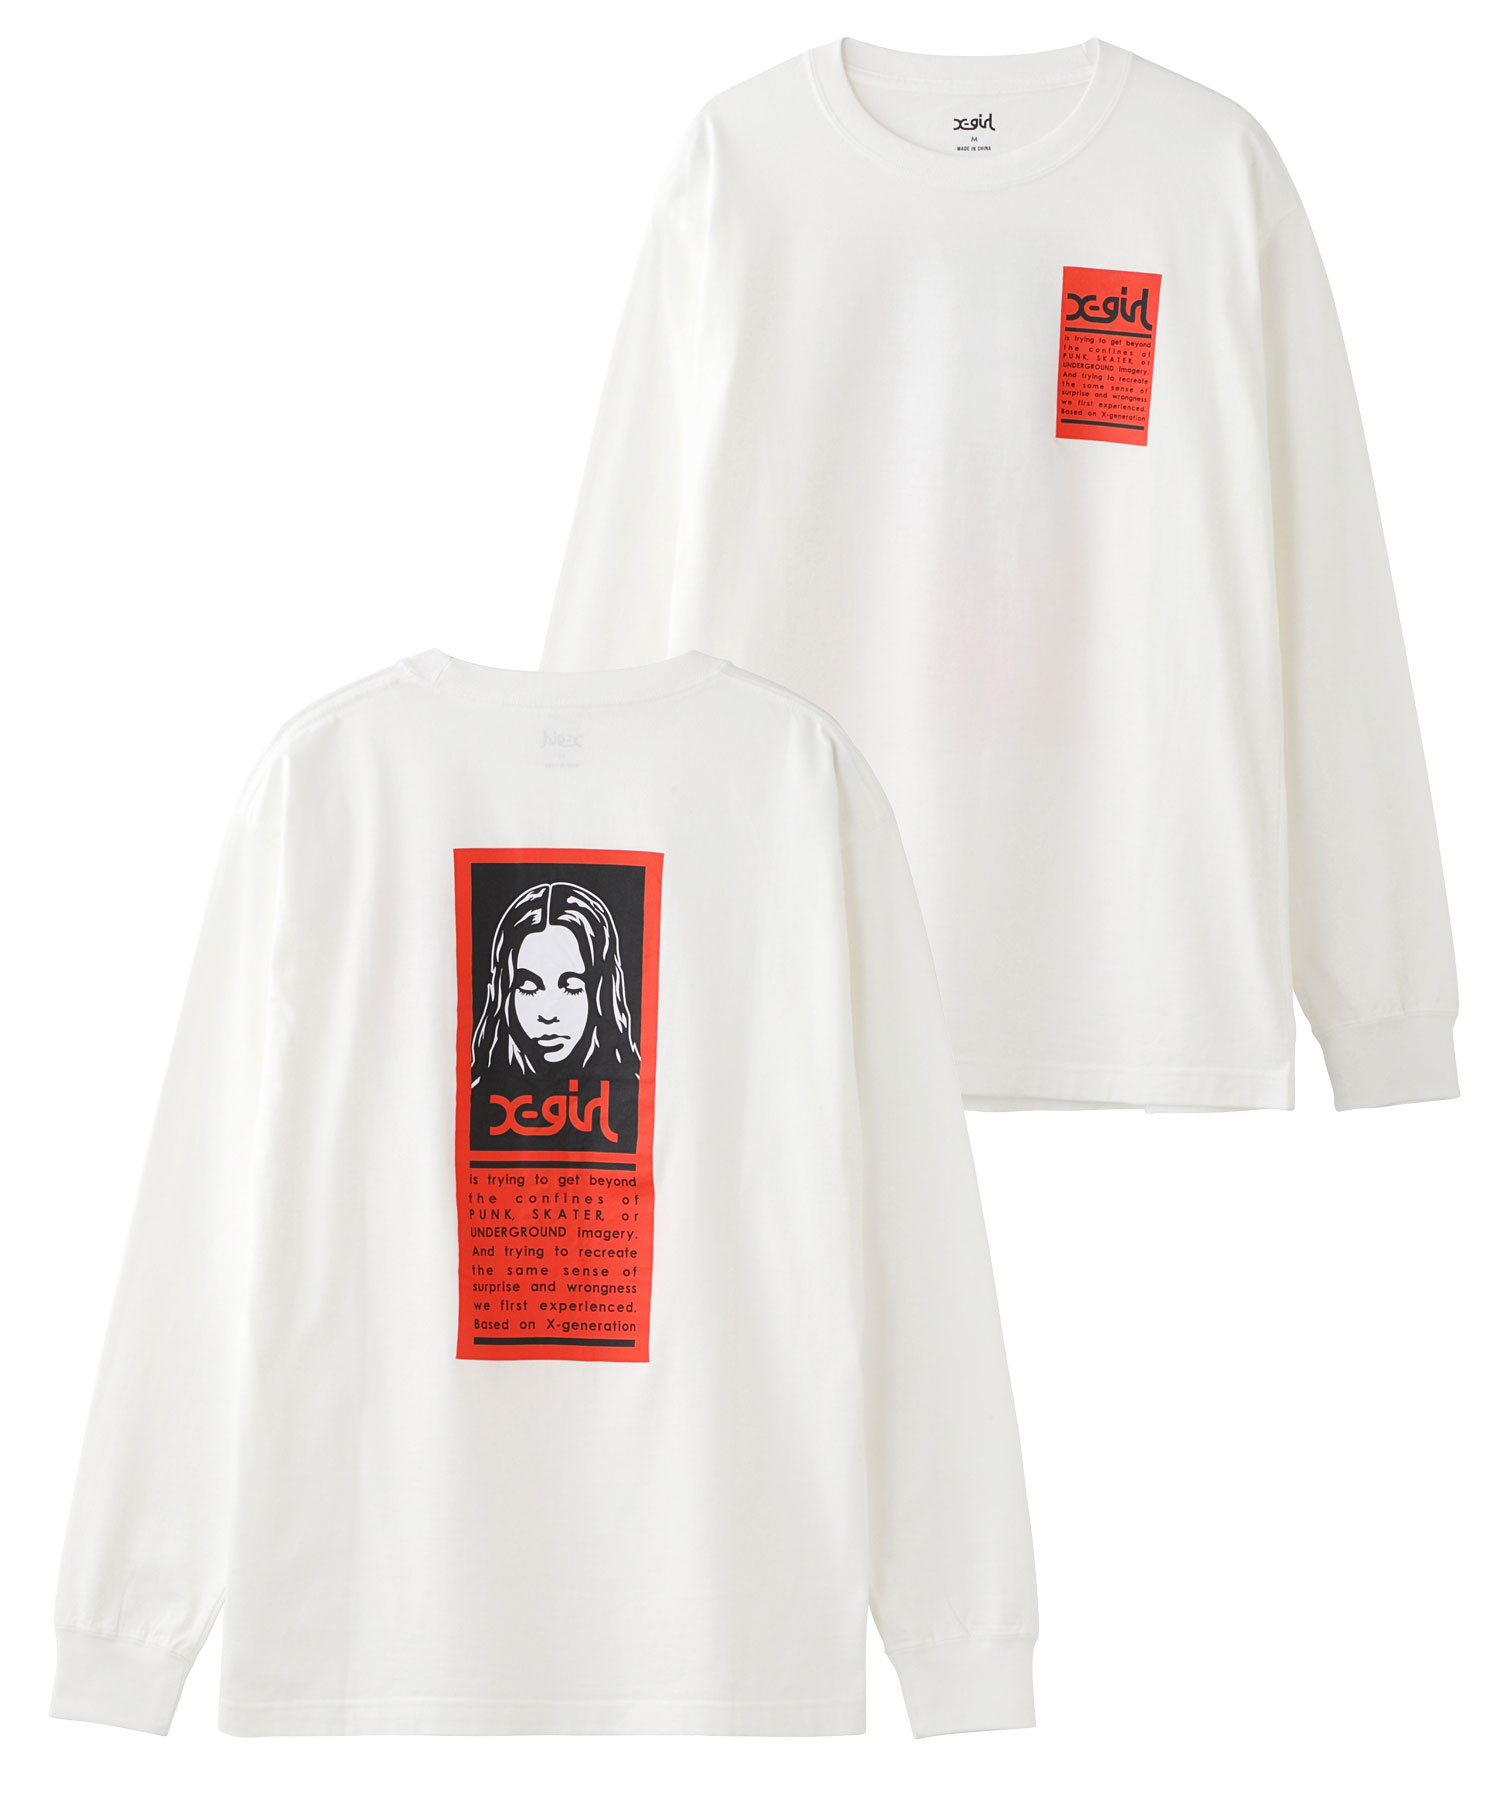 X-girl(エックスガール)通販|WORDS FACE L/S TEE(ホワイト)